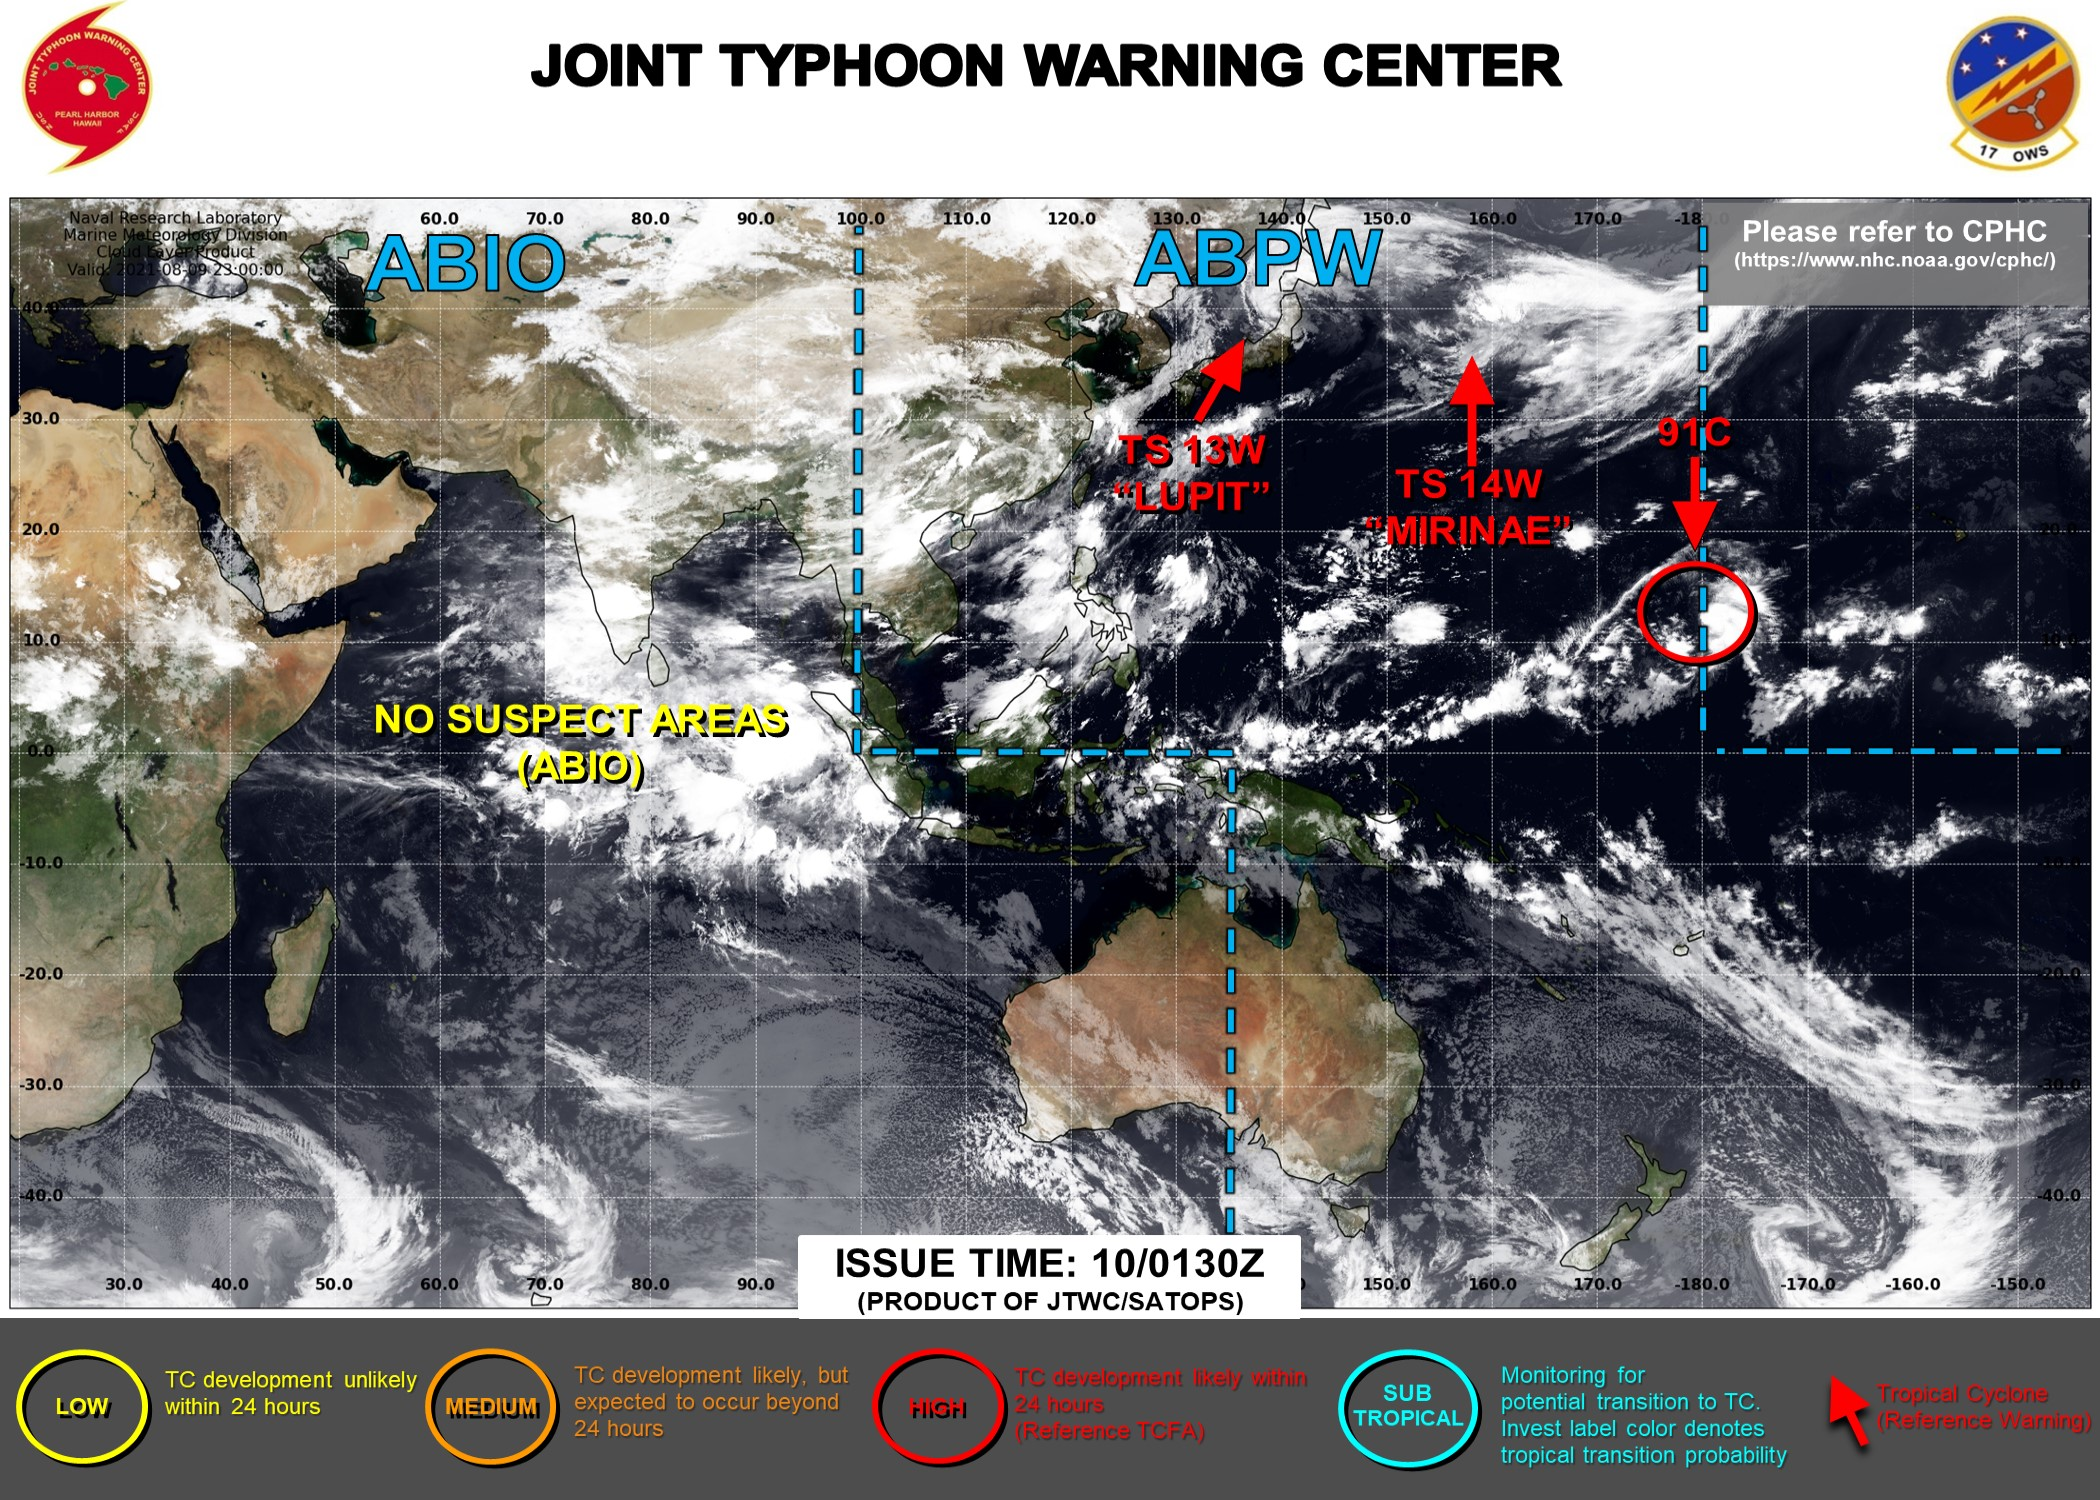 13W & 14W ARE BOTH EXTRA-TROPICAL. ORIGINATING EAST OF THE DATELINE INVEST 91C IS NOW HIGH.JTWC ARE ISSUING 3HOURLY SATELLITE BULLETINS FOR 13W,14W AND 91C.